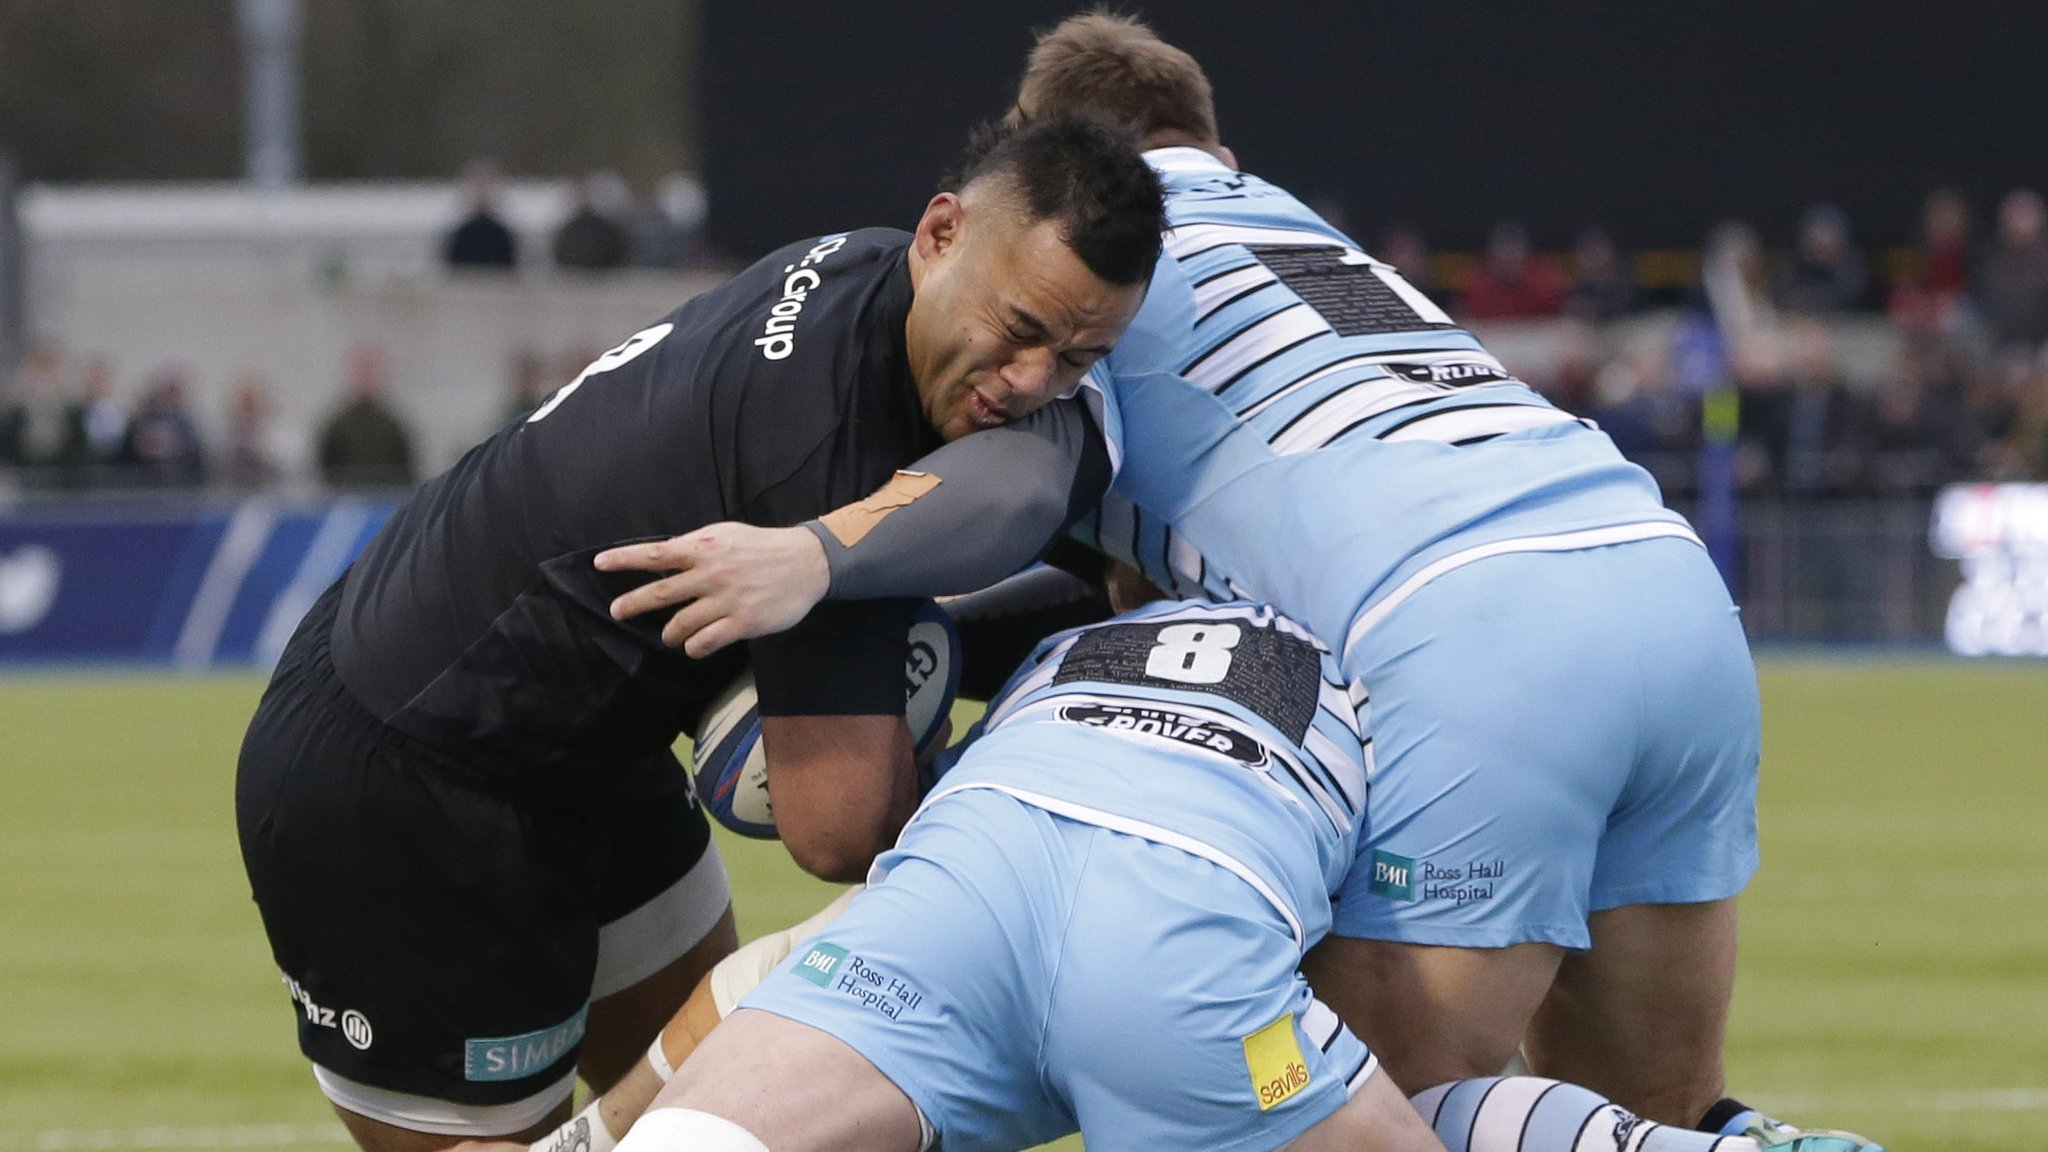 Saracens and Glasgow paired again in quarter-final draw